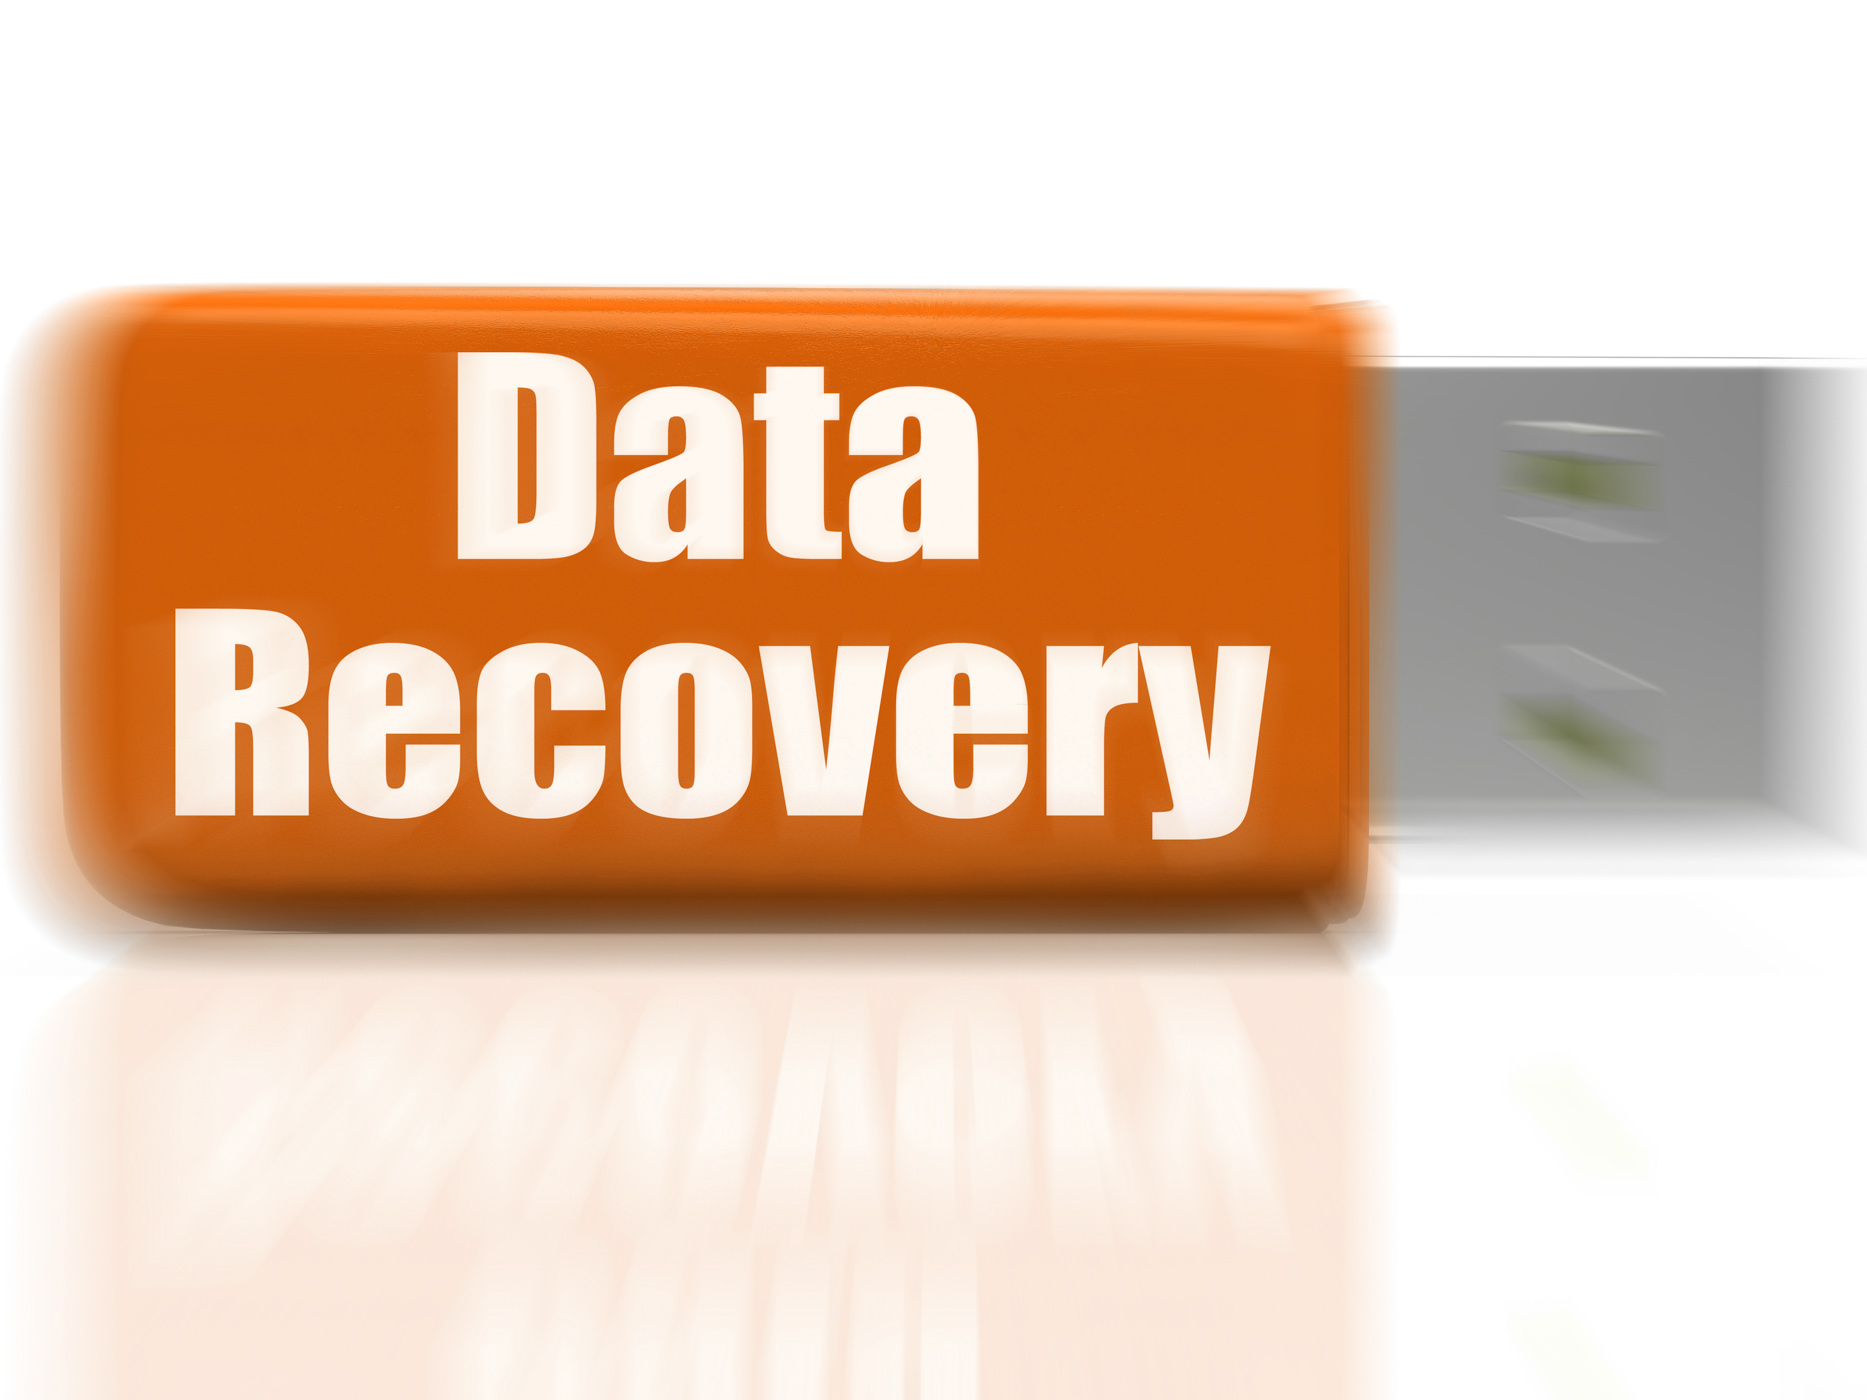 Data Recovery USB drive Means Safe Files Transfer Or Data Recovery, Backup, Computing, Convenient, Data, HQ Photo